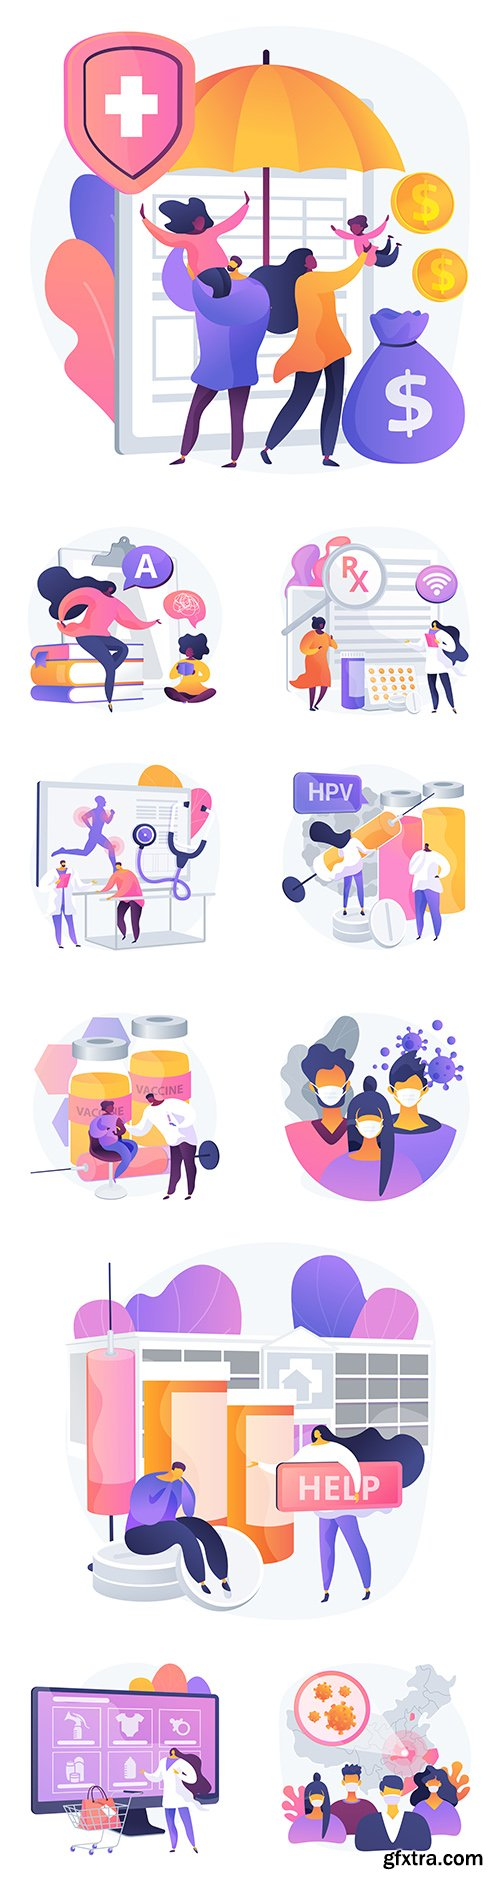 People and medicine flat and gradient design illustrations